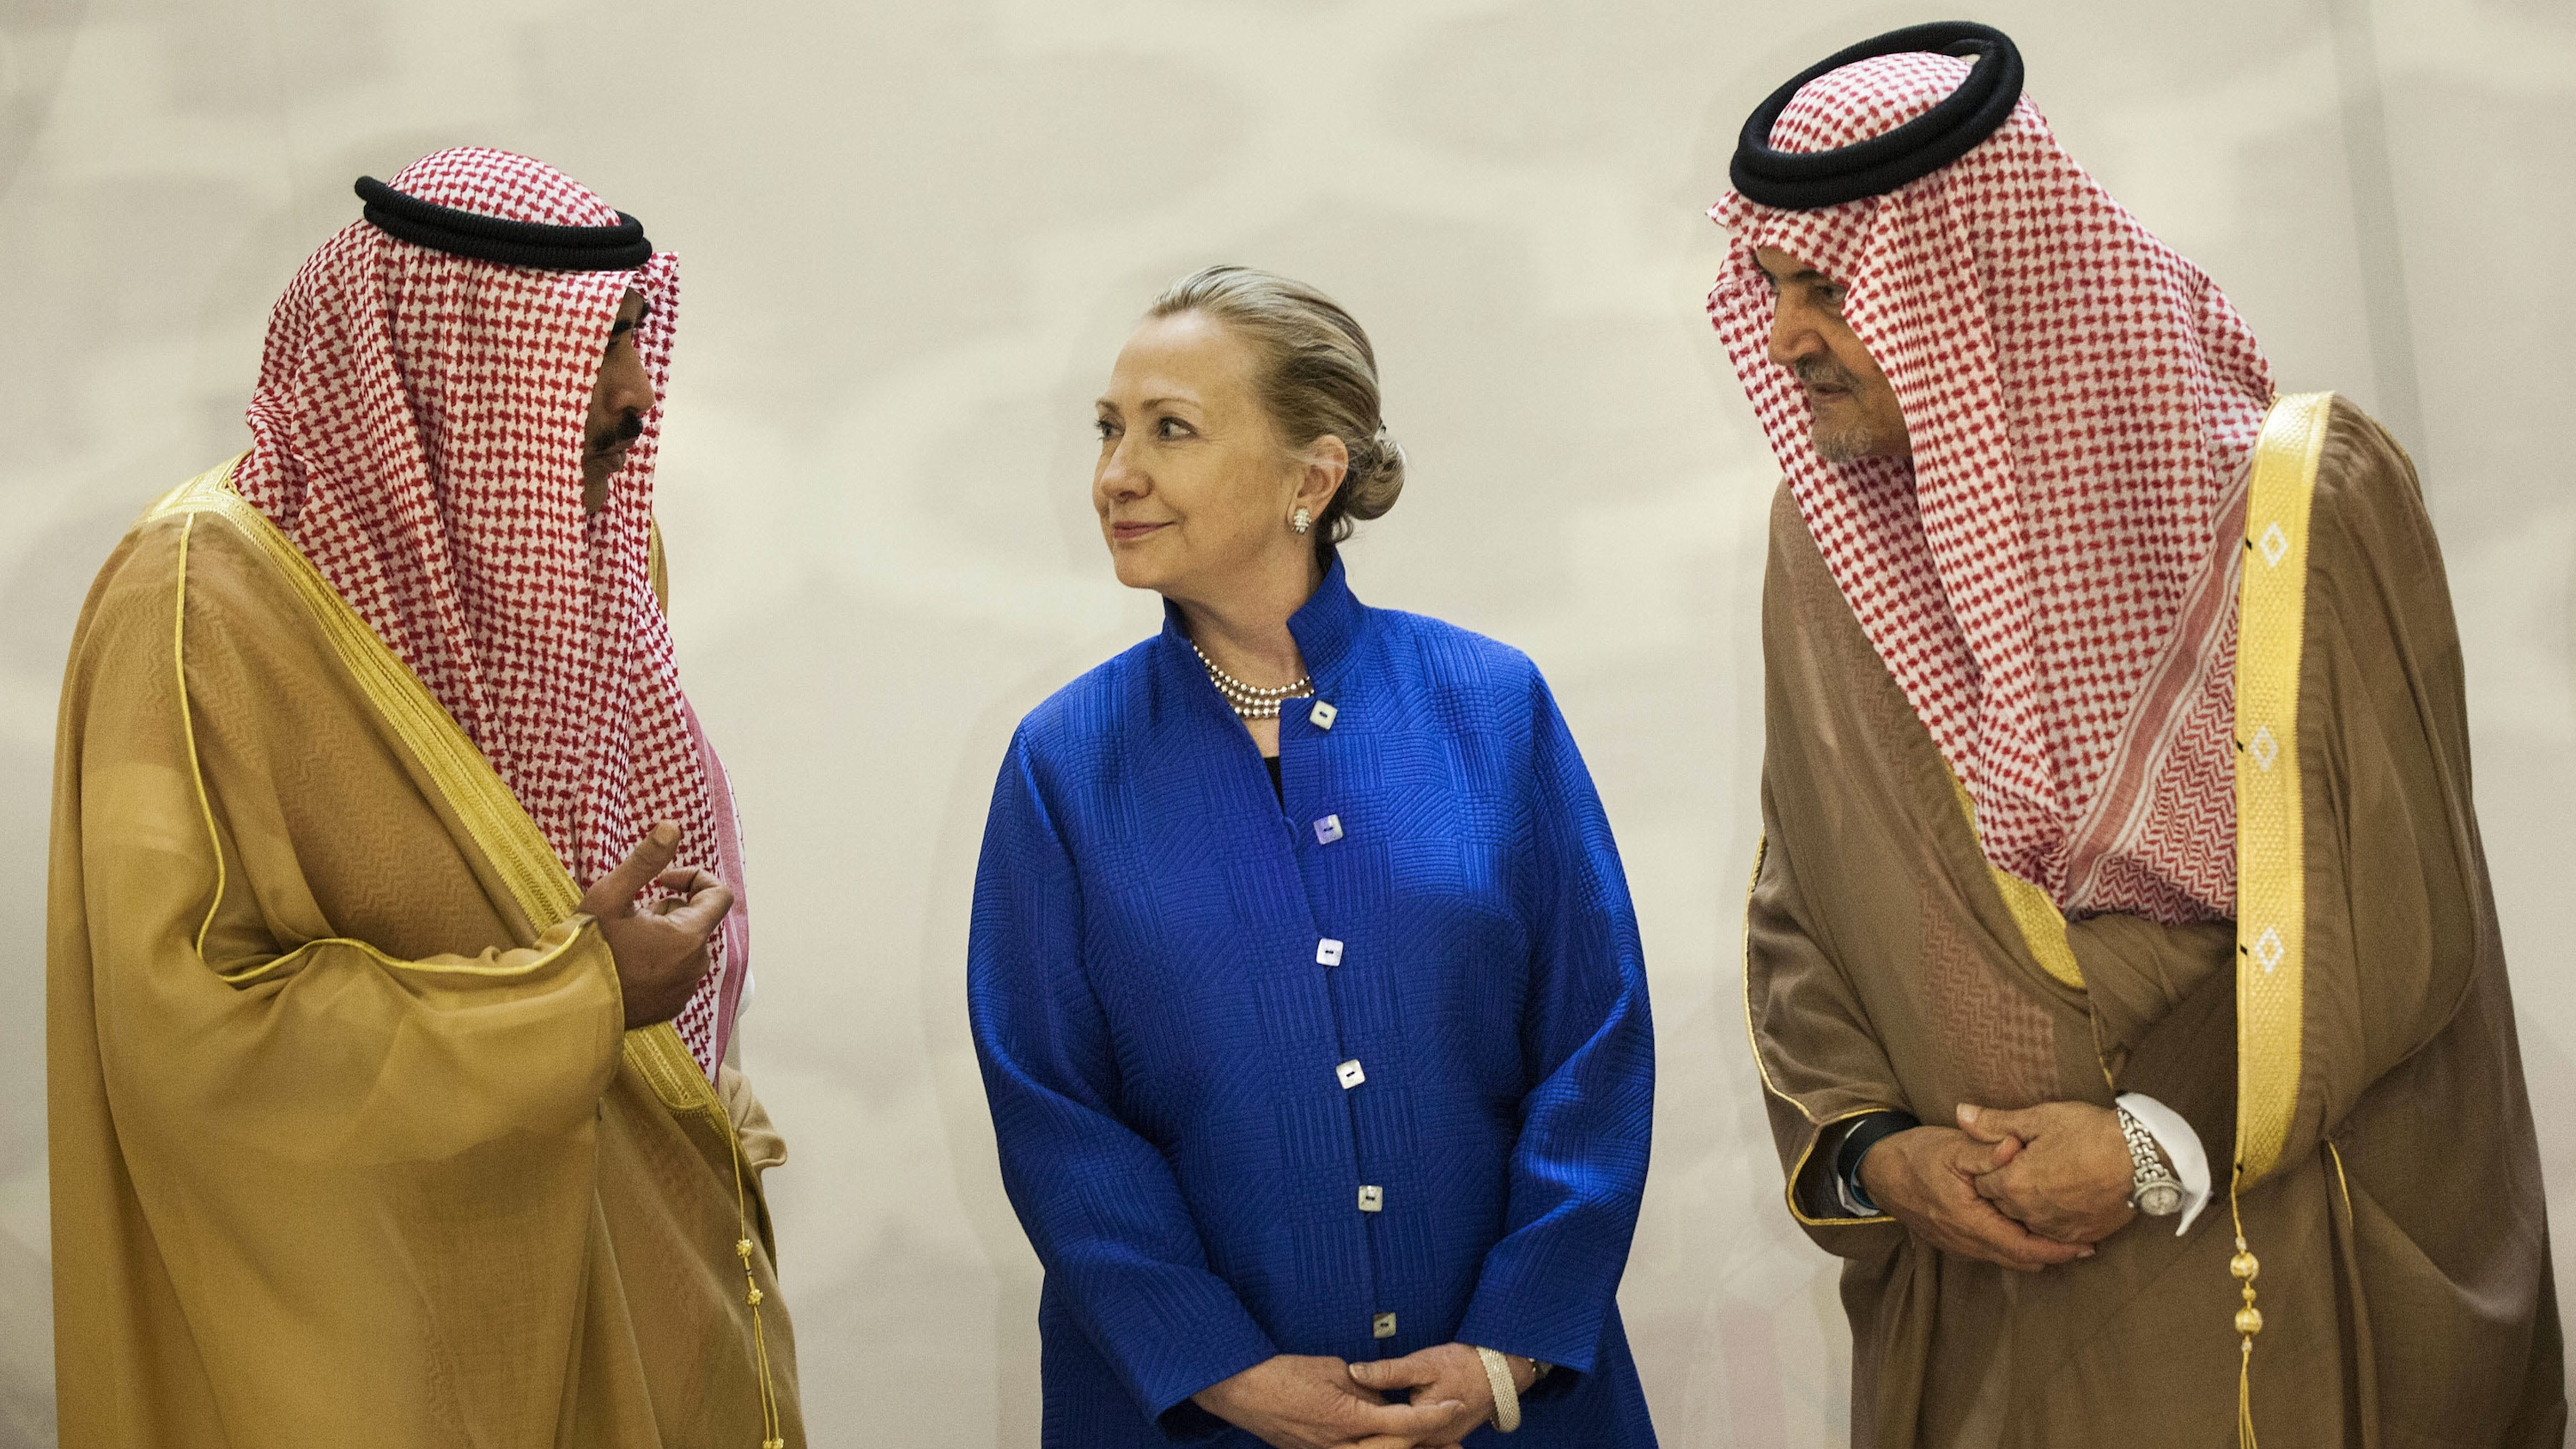 Saudi foreign minister Prince Saud al-Faisal, right, US secretary of state Hillary Clinton and Kuwaiti foreign minister Sheikh Sabah Khaled al-Hamad al-Sabah chat prior to a group photo before a US-Gulf Cooperation Council forum at the Gulf Cooperation Council Secretariat in Riyadh, Saudi Arabia, Mar. 2012.